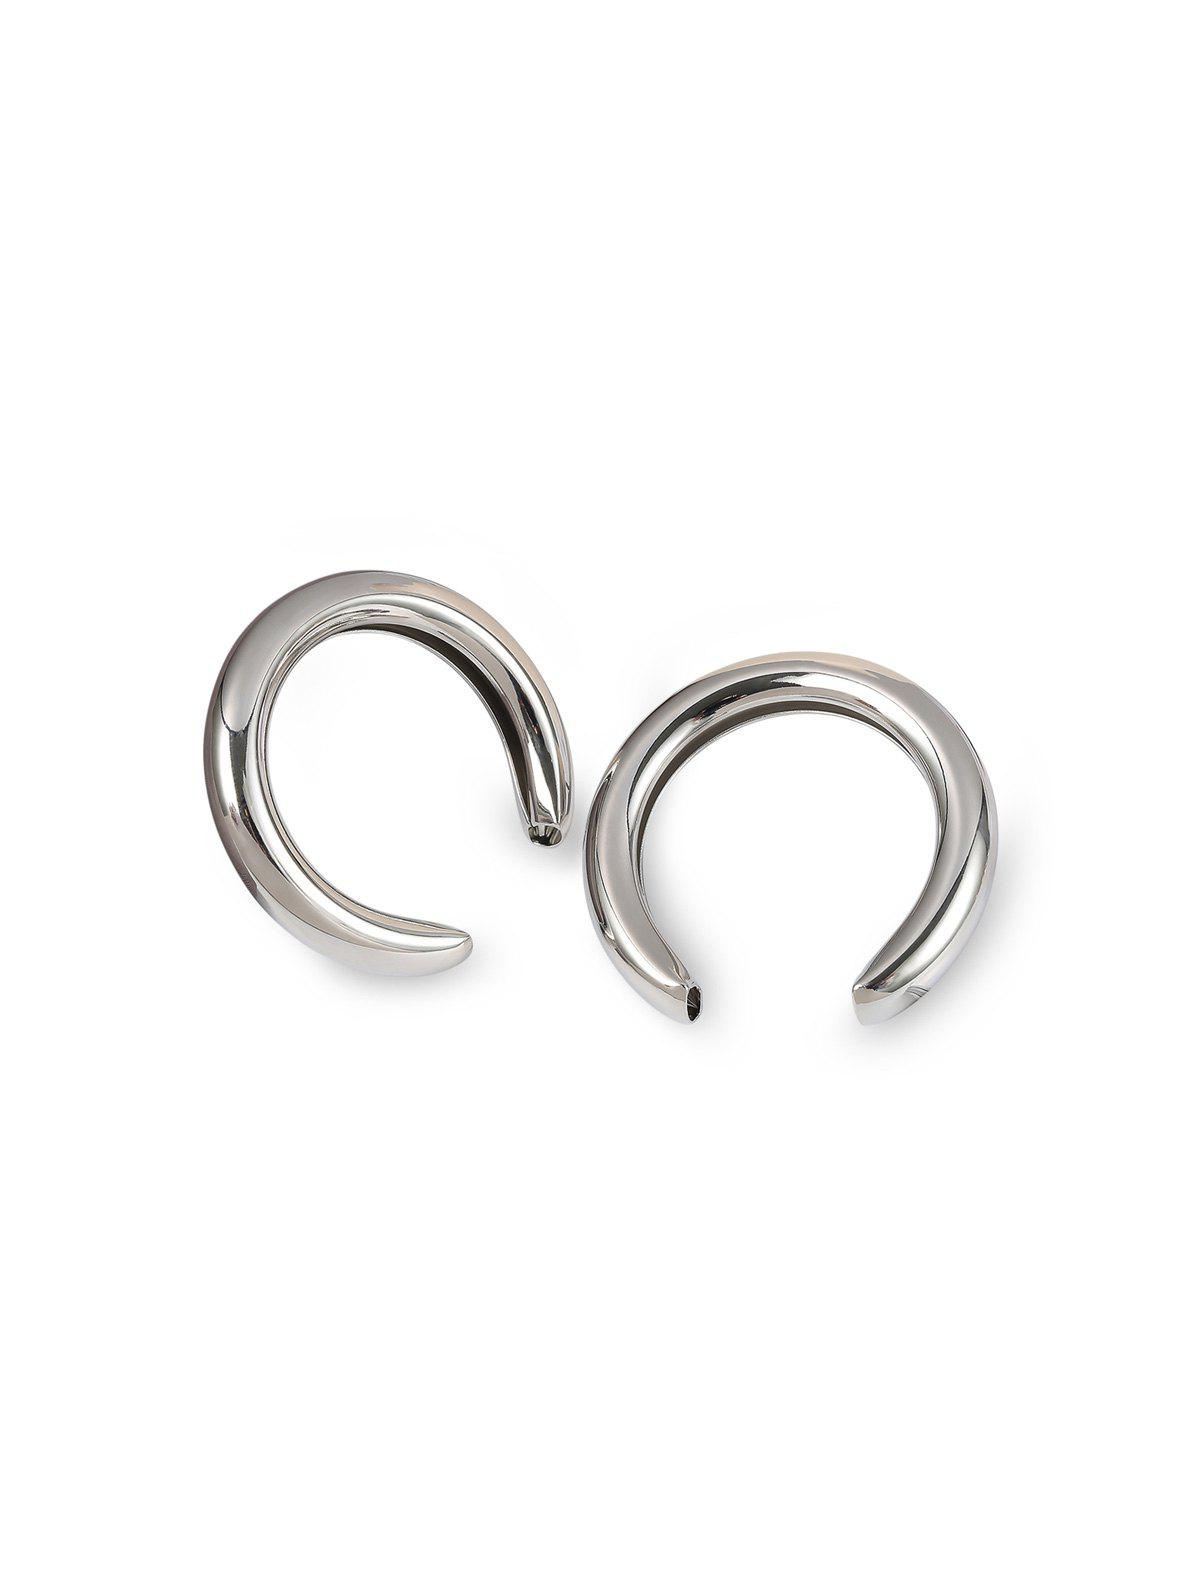 Exaggerated Crescent Moon Stud Earrings - SILVER 5.1CM